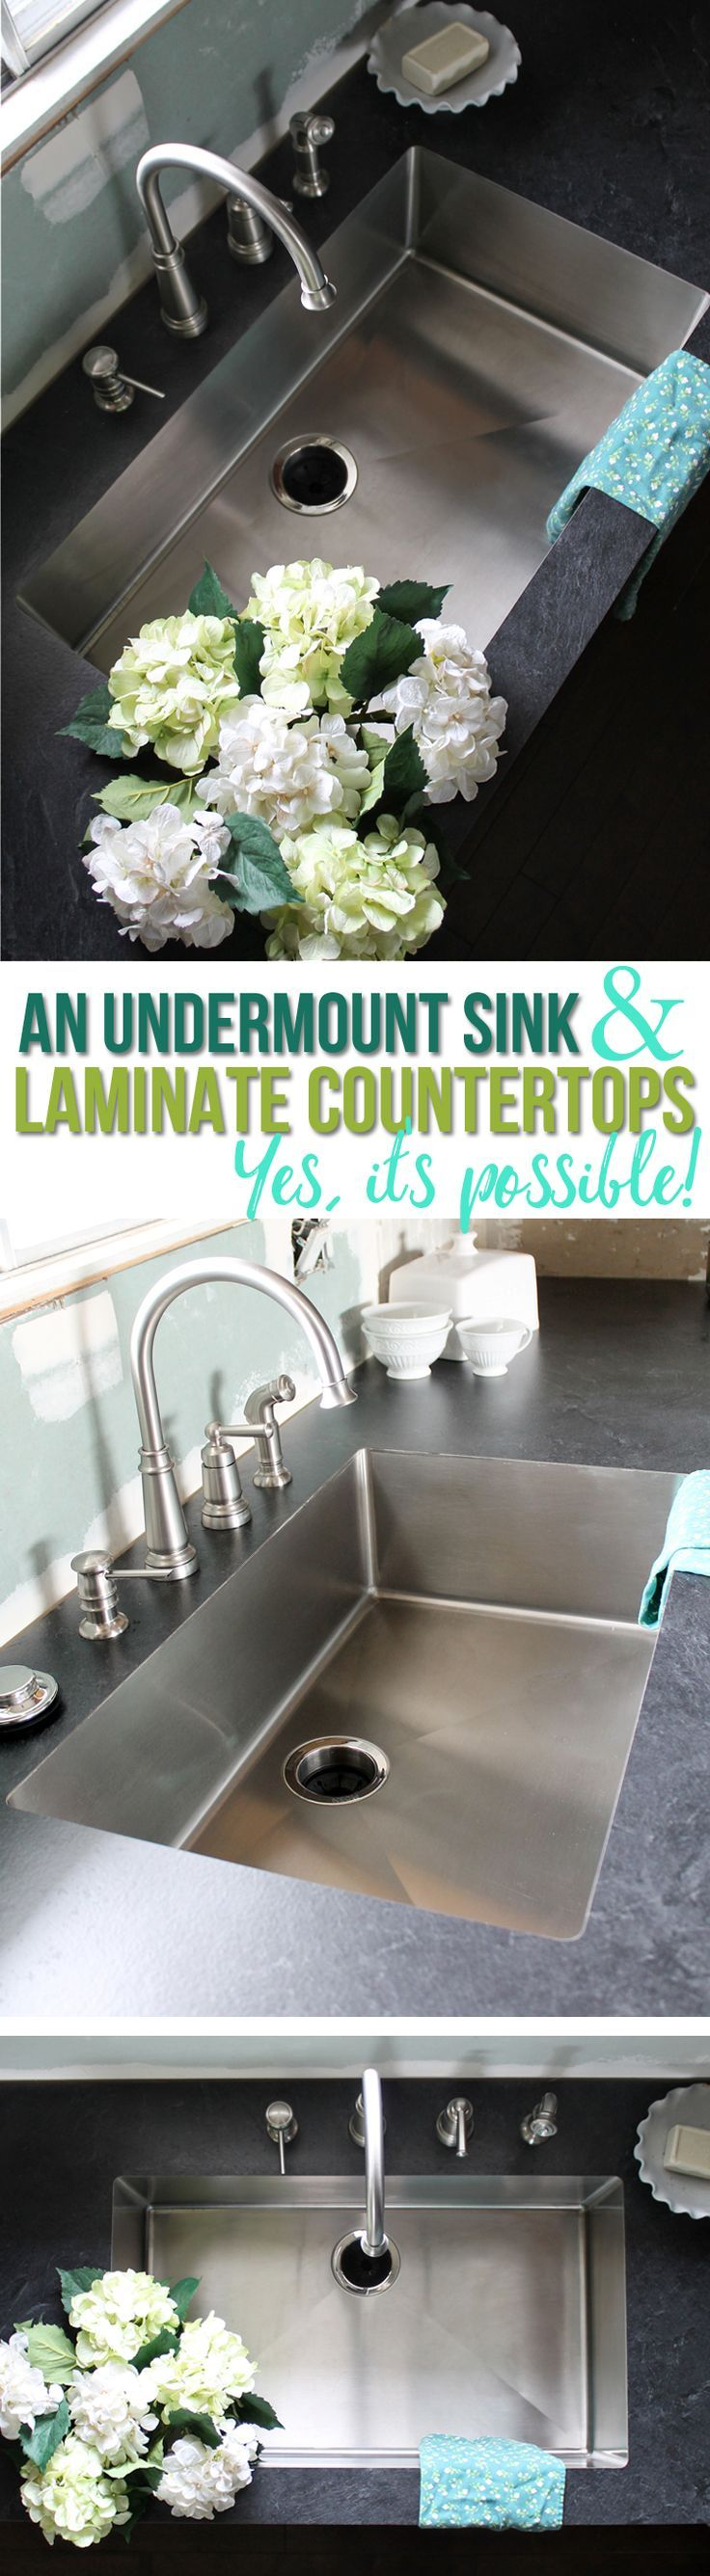 Yes, you CAN have an undermount kitchen sink with laminate countertops! This awesome sink is specially made to be installed seamlessly with laminate. Do it yourself or hire it out. This article shows you exactly how to DIY it! Great idea for your kitchen remodel.